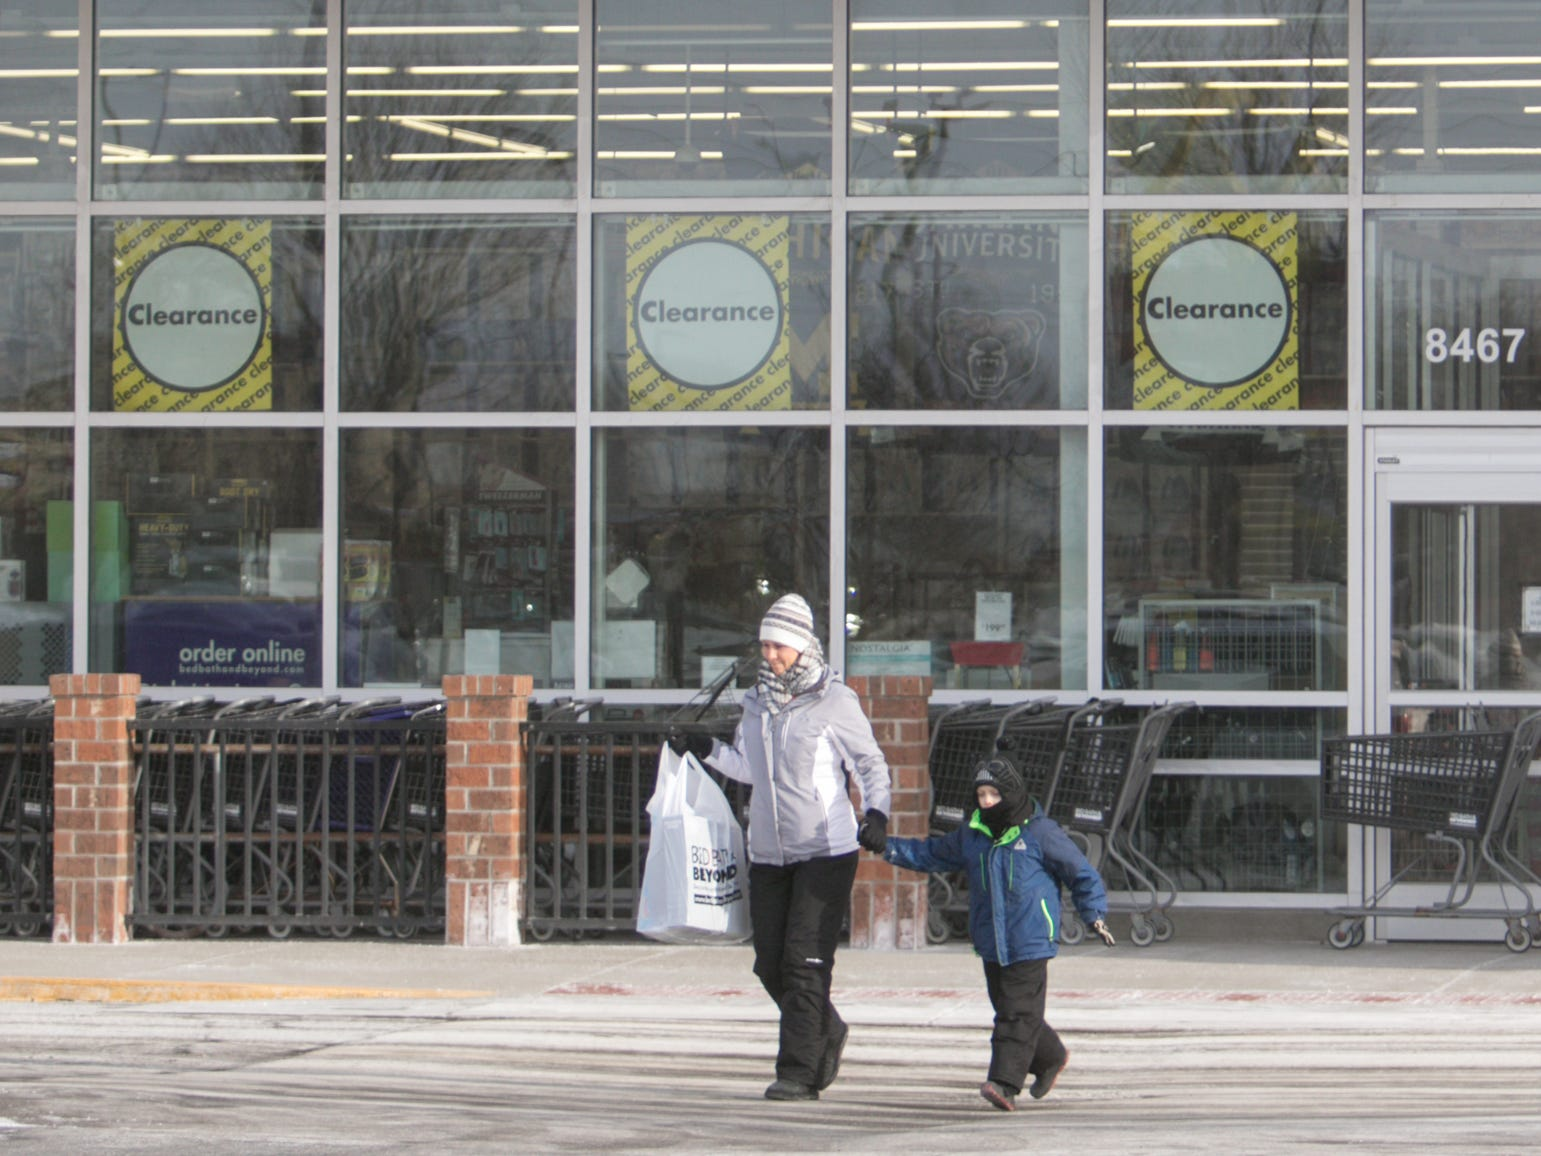 Shoppers hurry to their cars in the frigid weather Wednesday, Jan. 30, 2019, coming from the Bed, Bath and Beyond store at 8467 Grand River in Brighton.